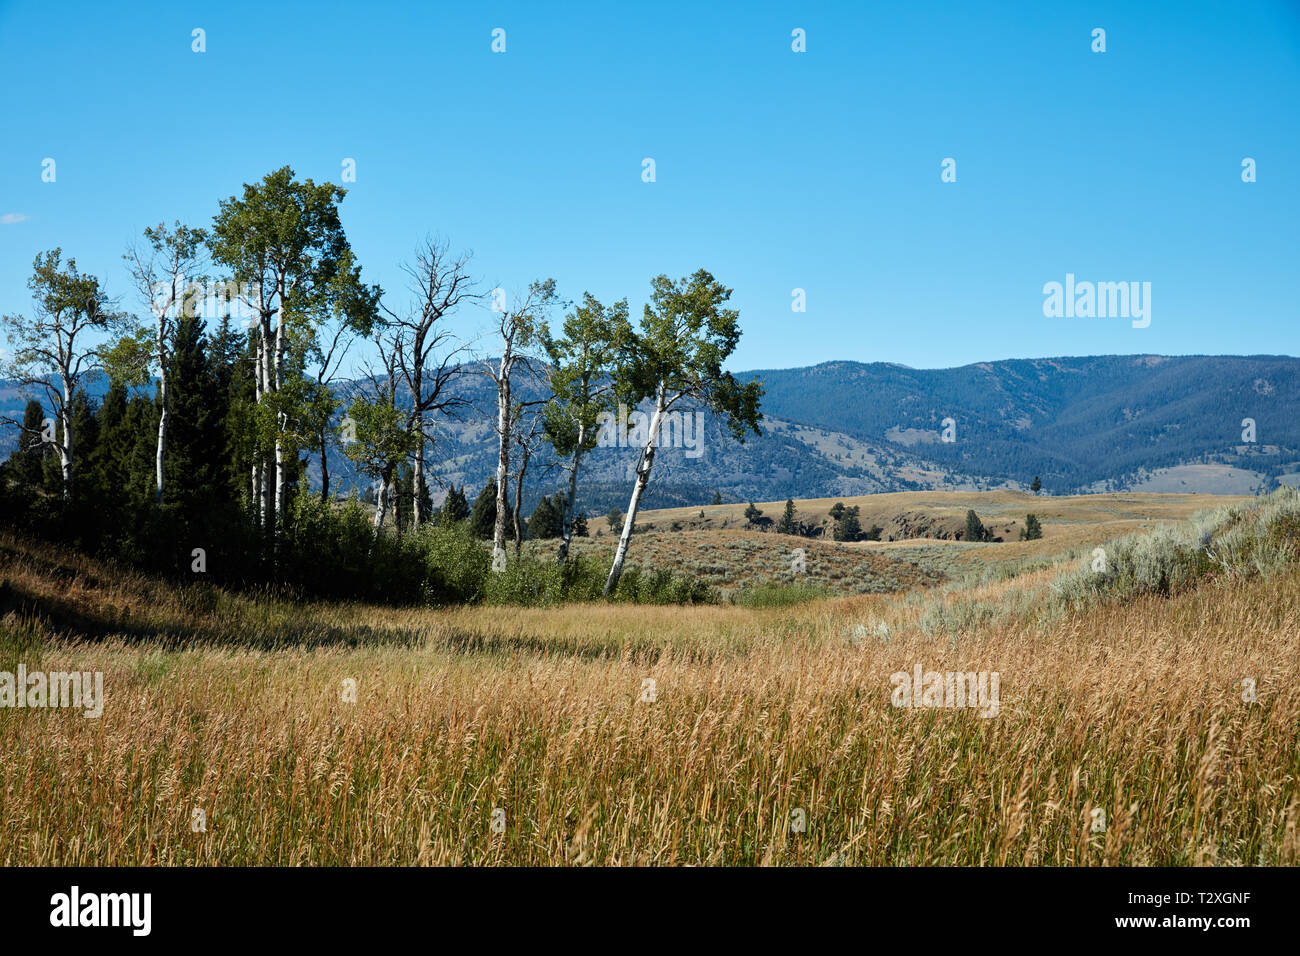 Aspen trees on Blacktail Plateau in Yellowstone National Park - Stock Image